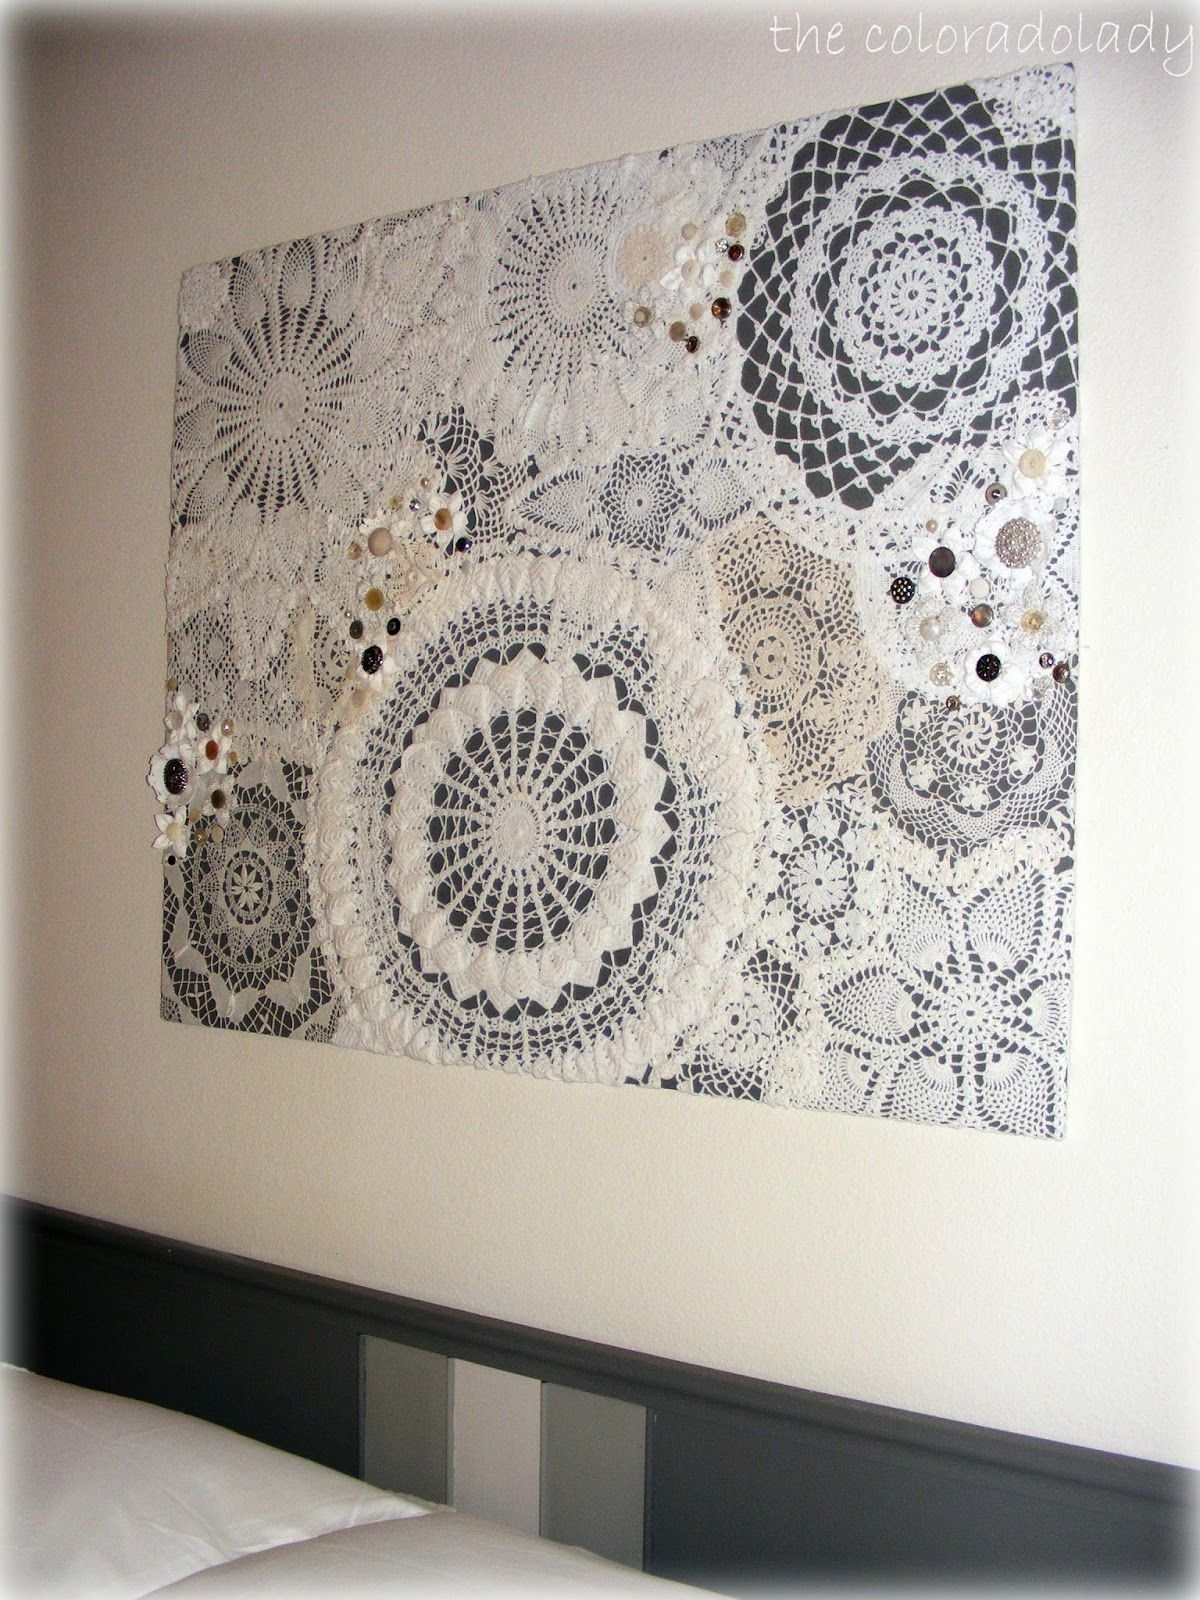 Diy Doily Craft Ideas | My Style | Pinterest | Doilies Crafts, Walls With Regard To Best And Newest Crochet Wall Art (View 11 of 20)